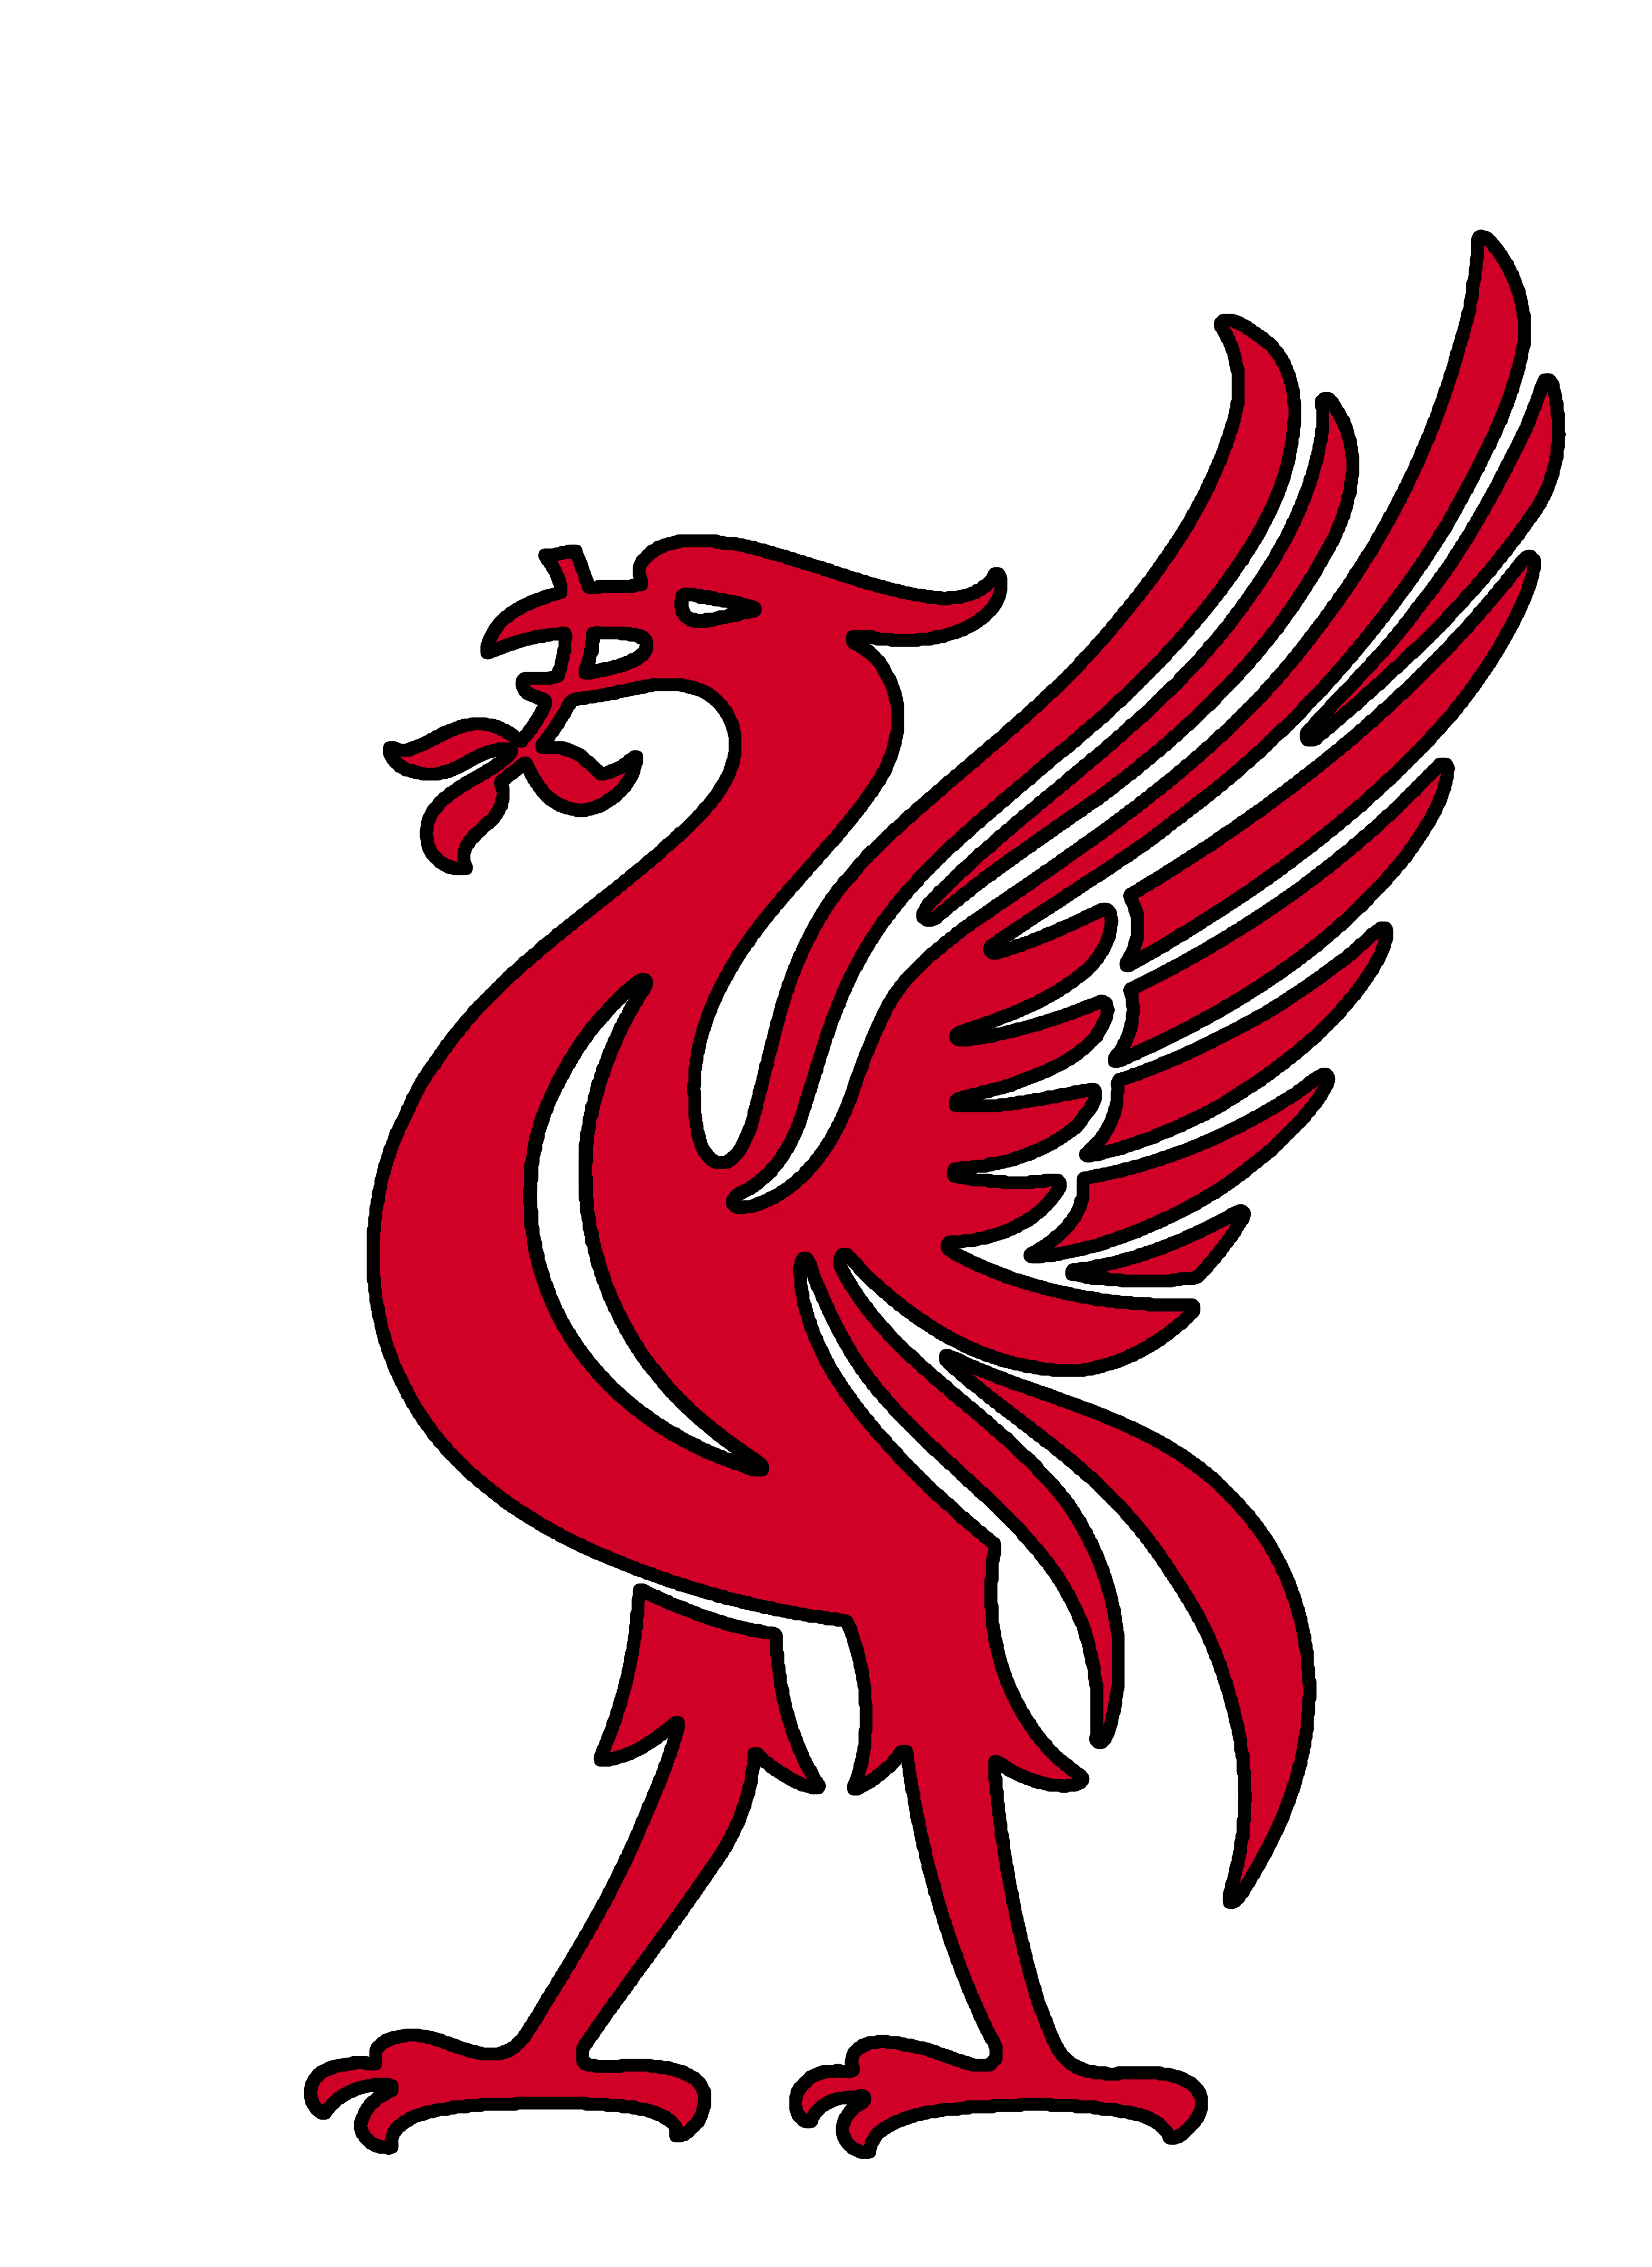 Liverpool Logo Black And Red